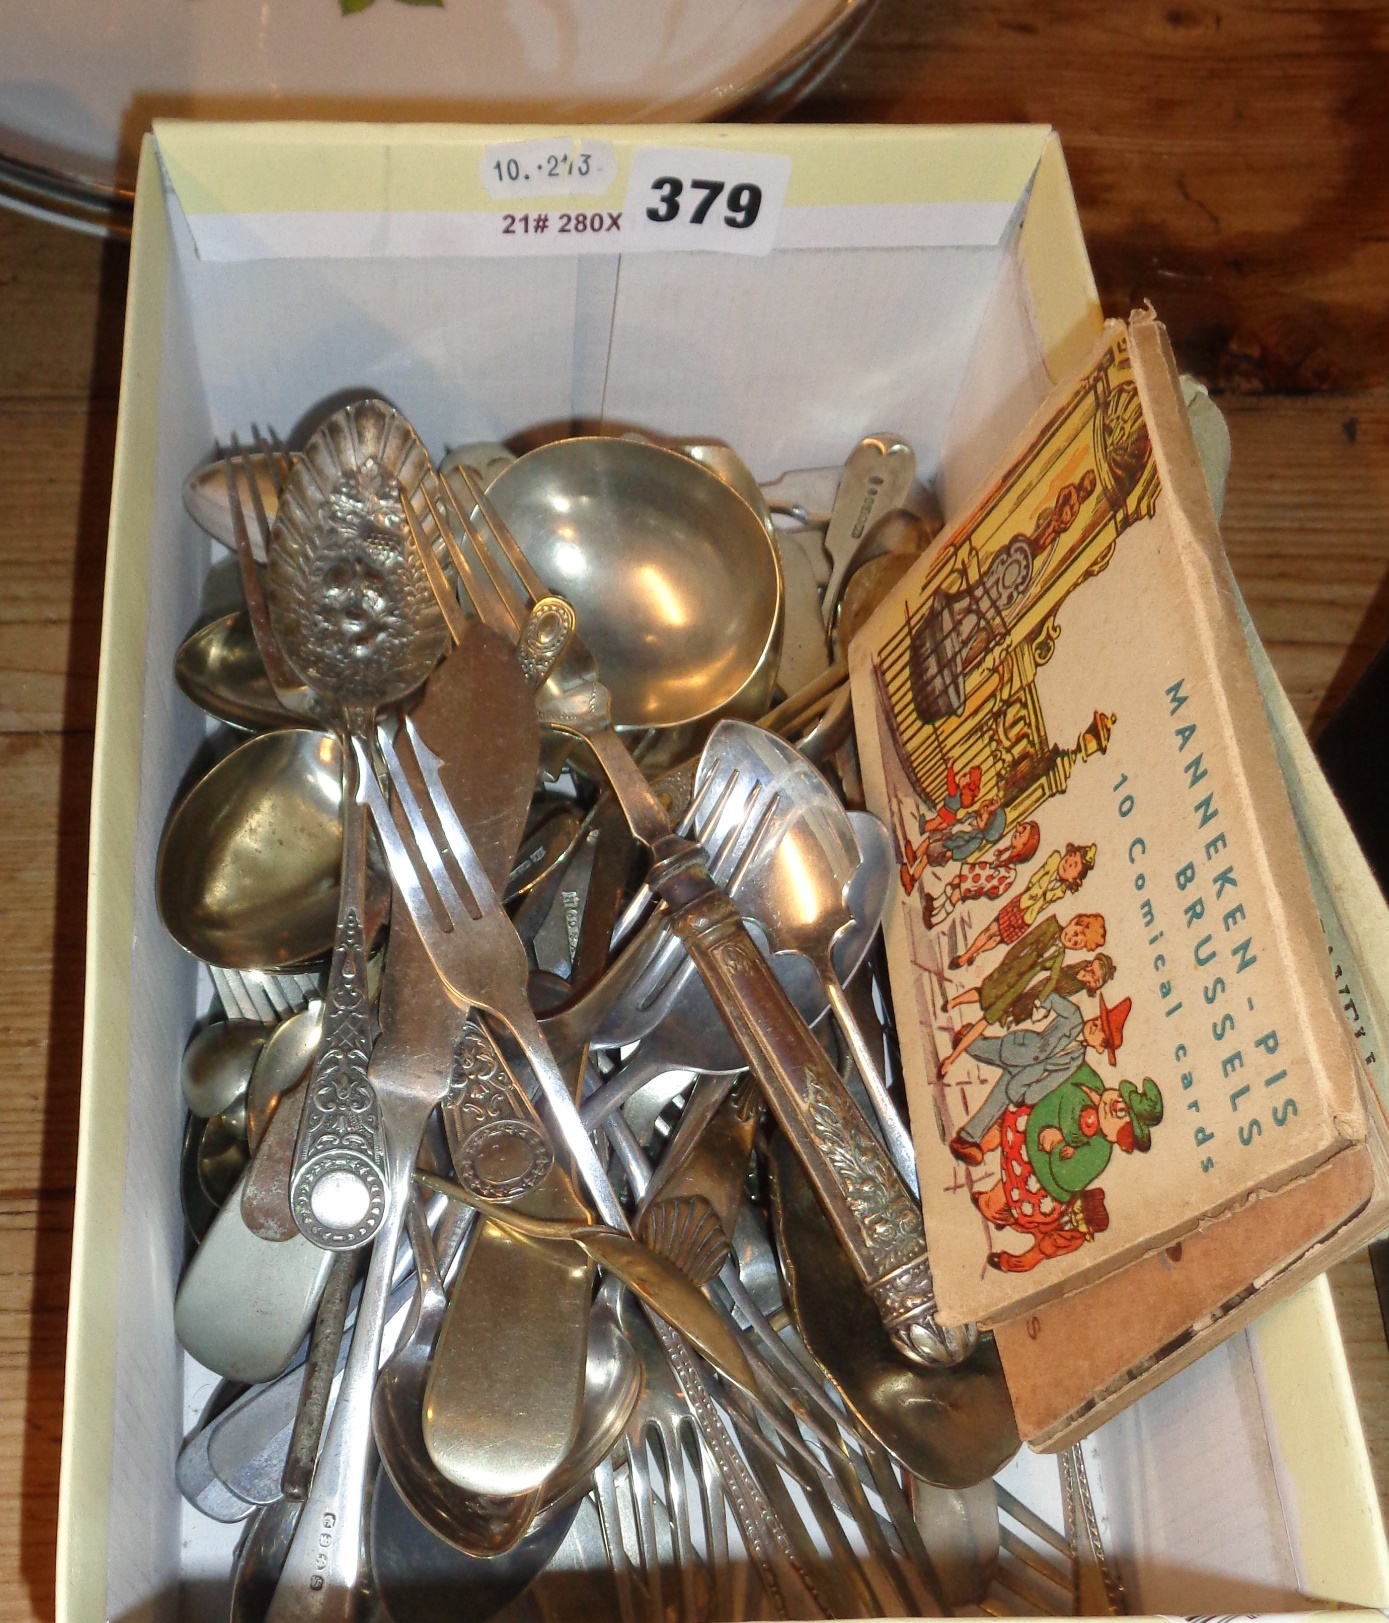 Lot 379 - Box of silver plated cutlery and comical postcards